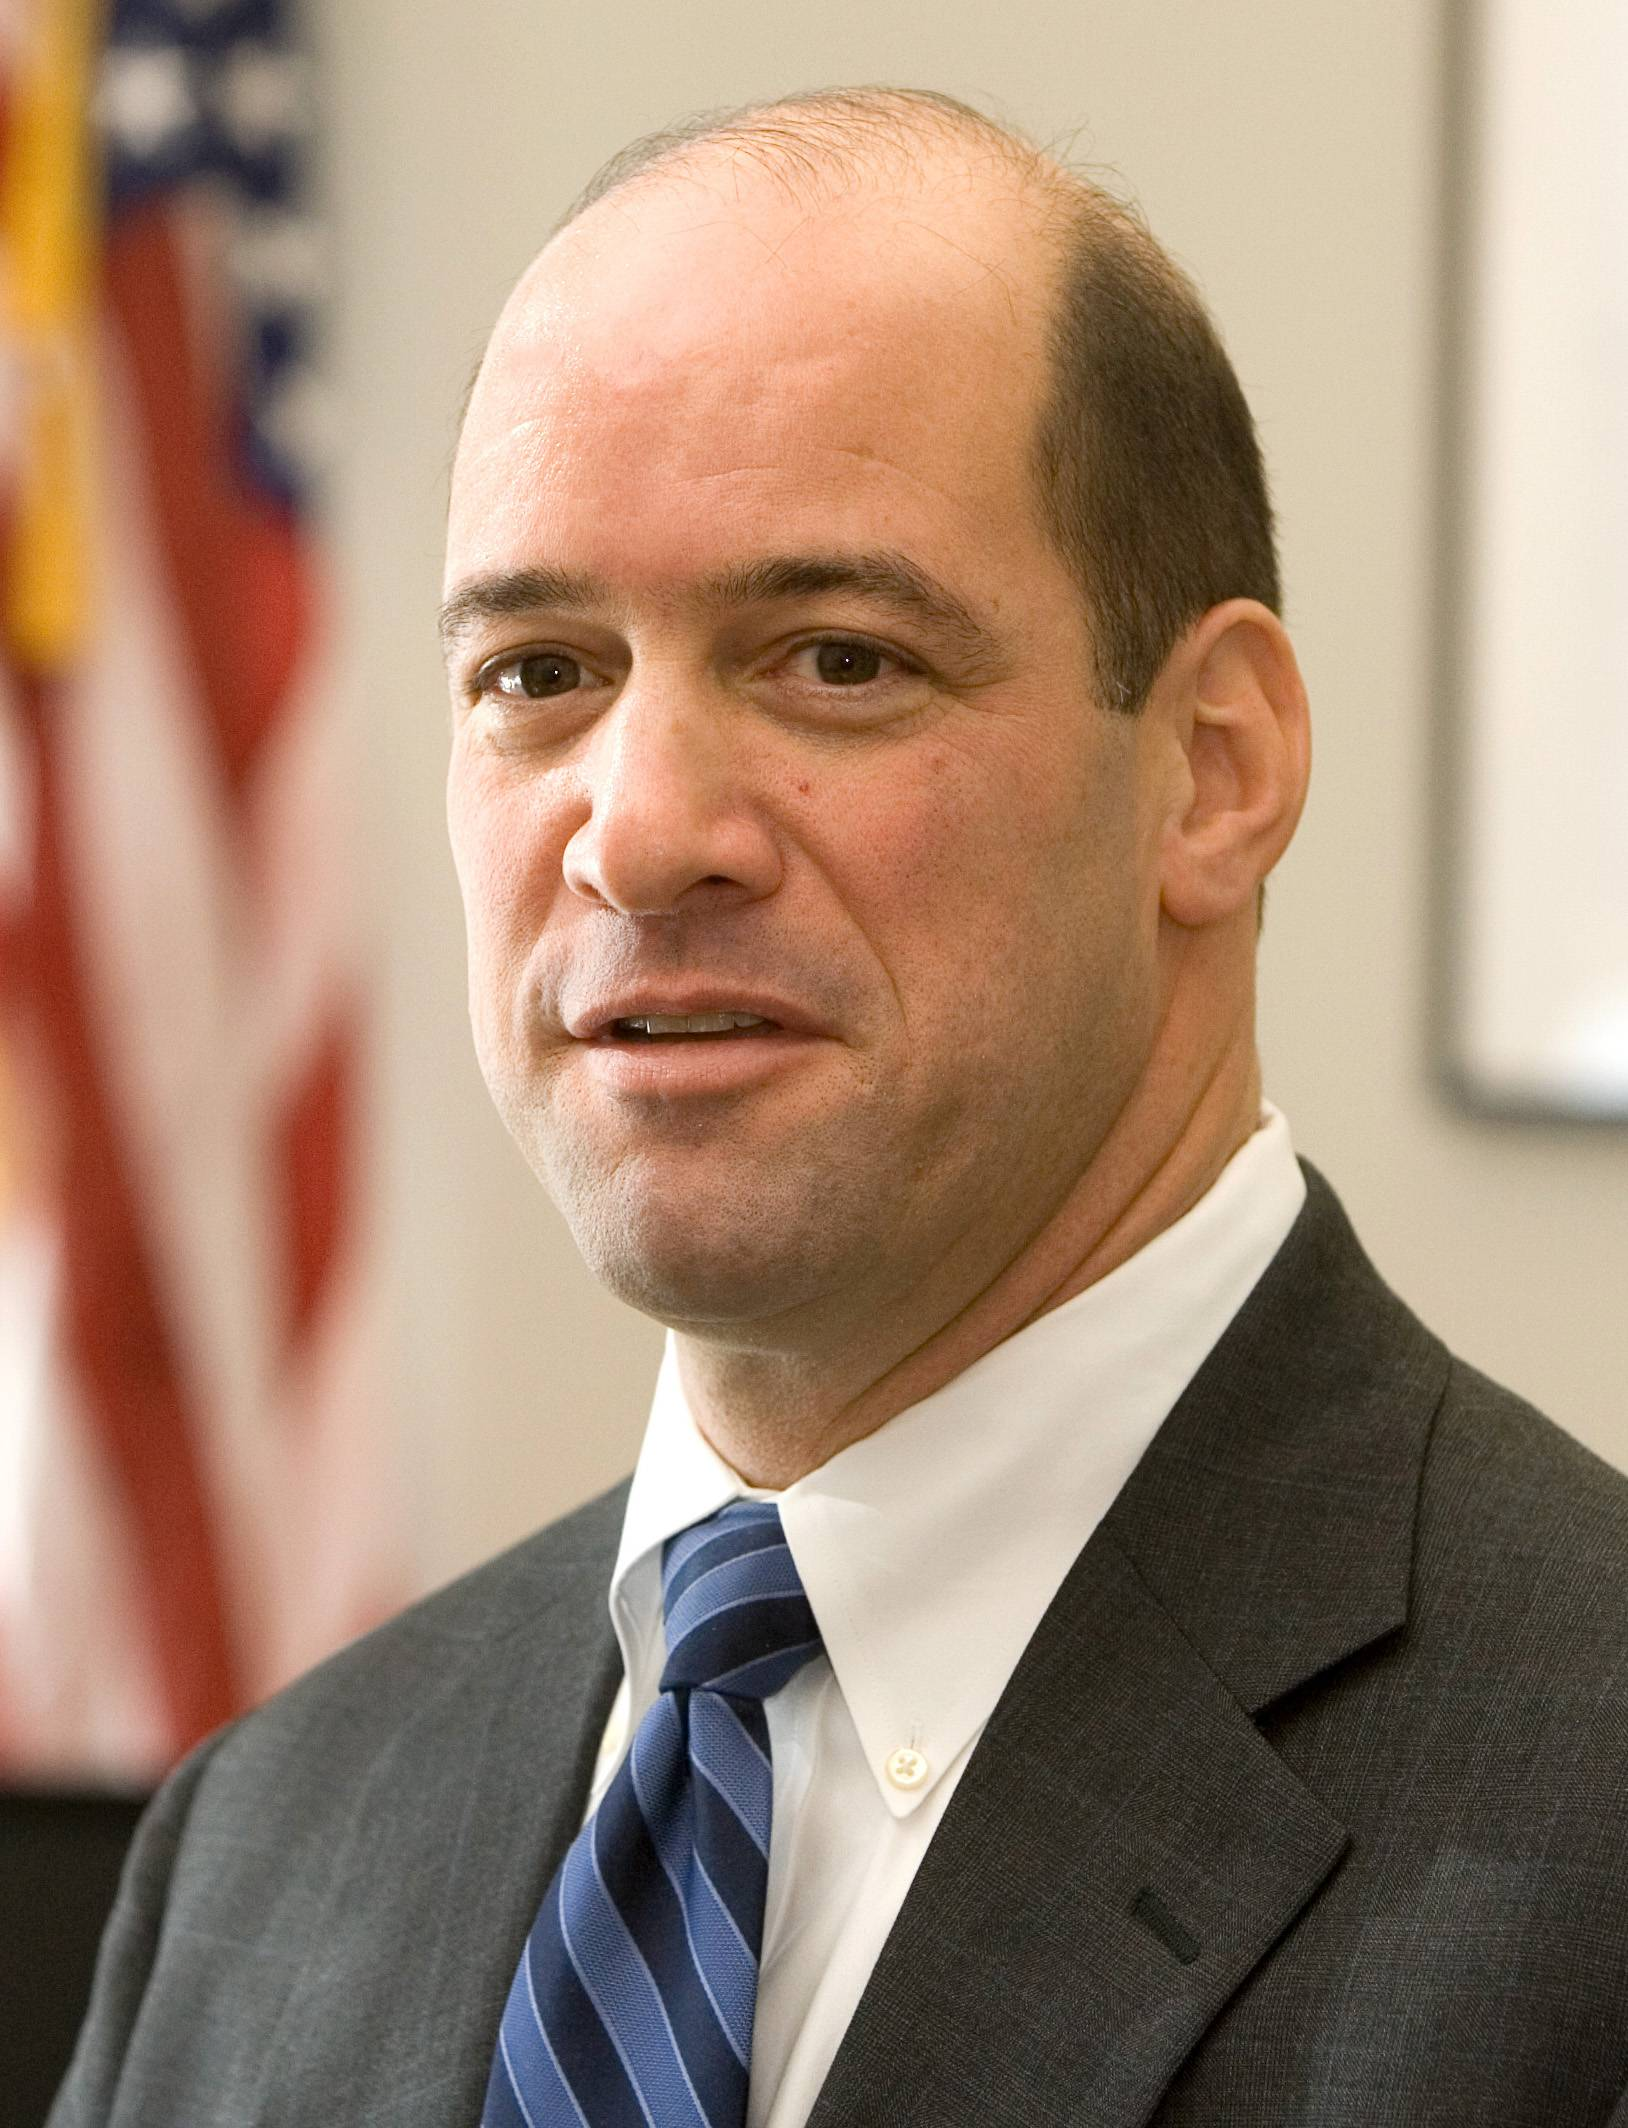 DuPage State's Attorney Robert Berlin announced a plan to take quicker blood draws of motorists suspected of DUI.